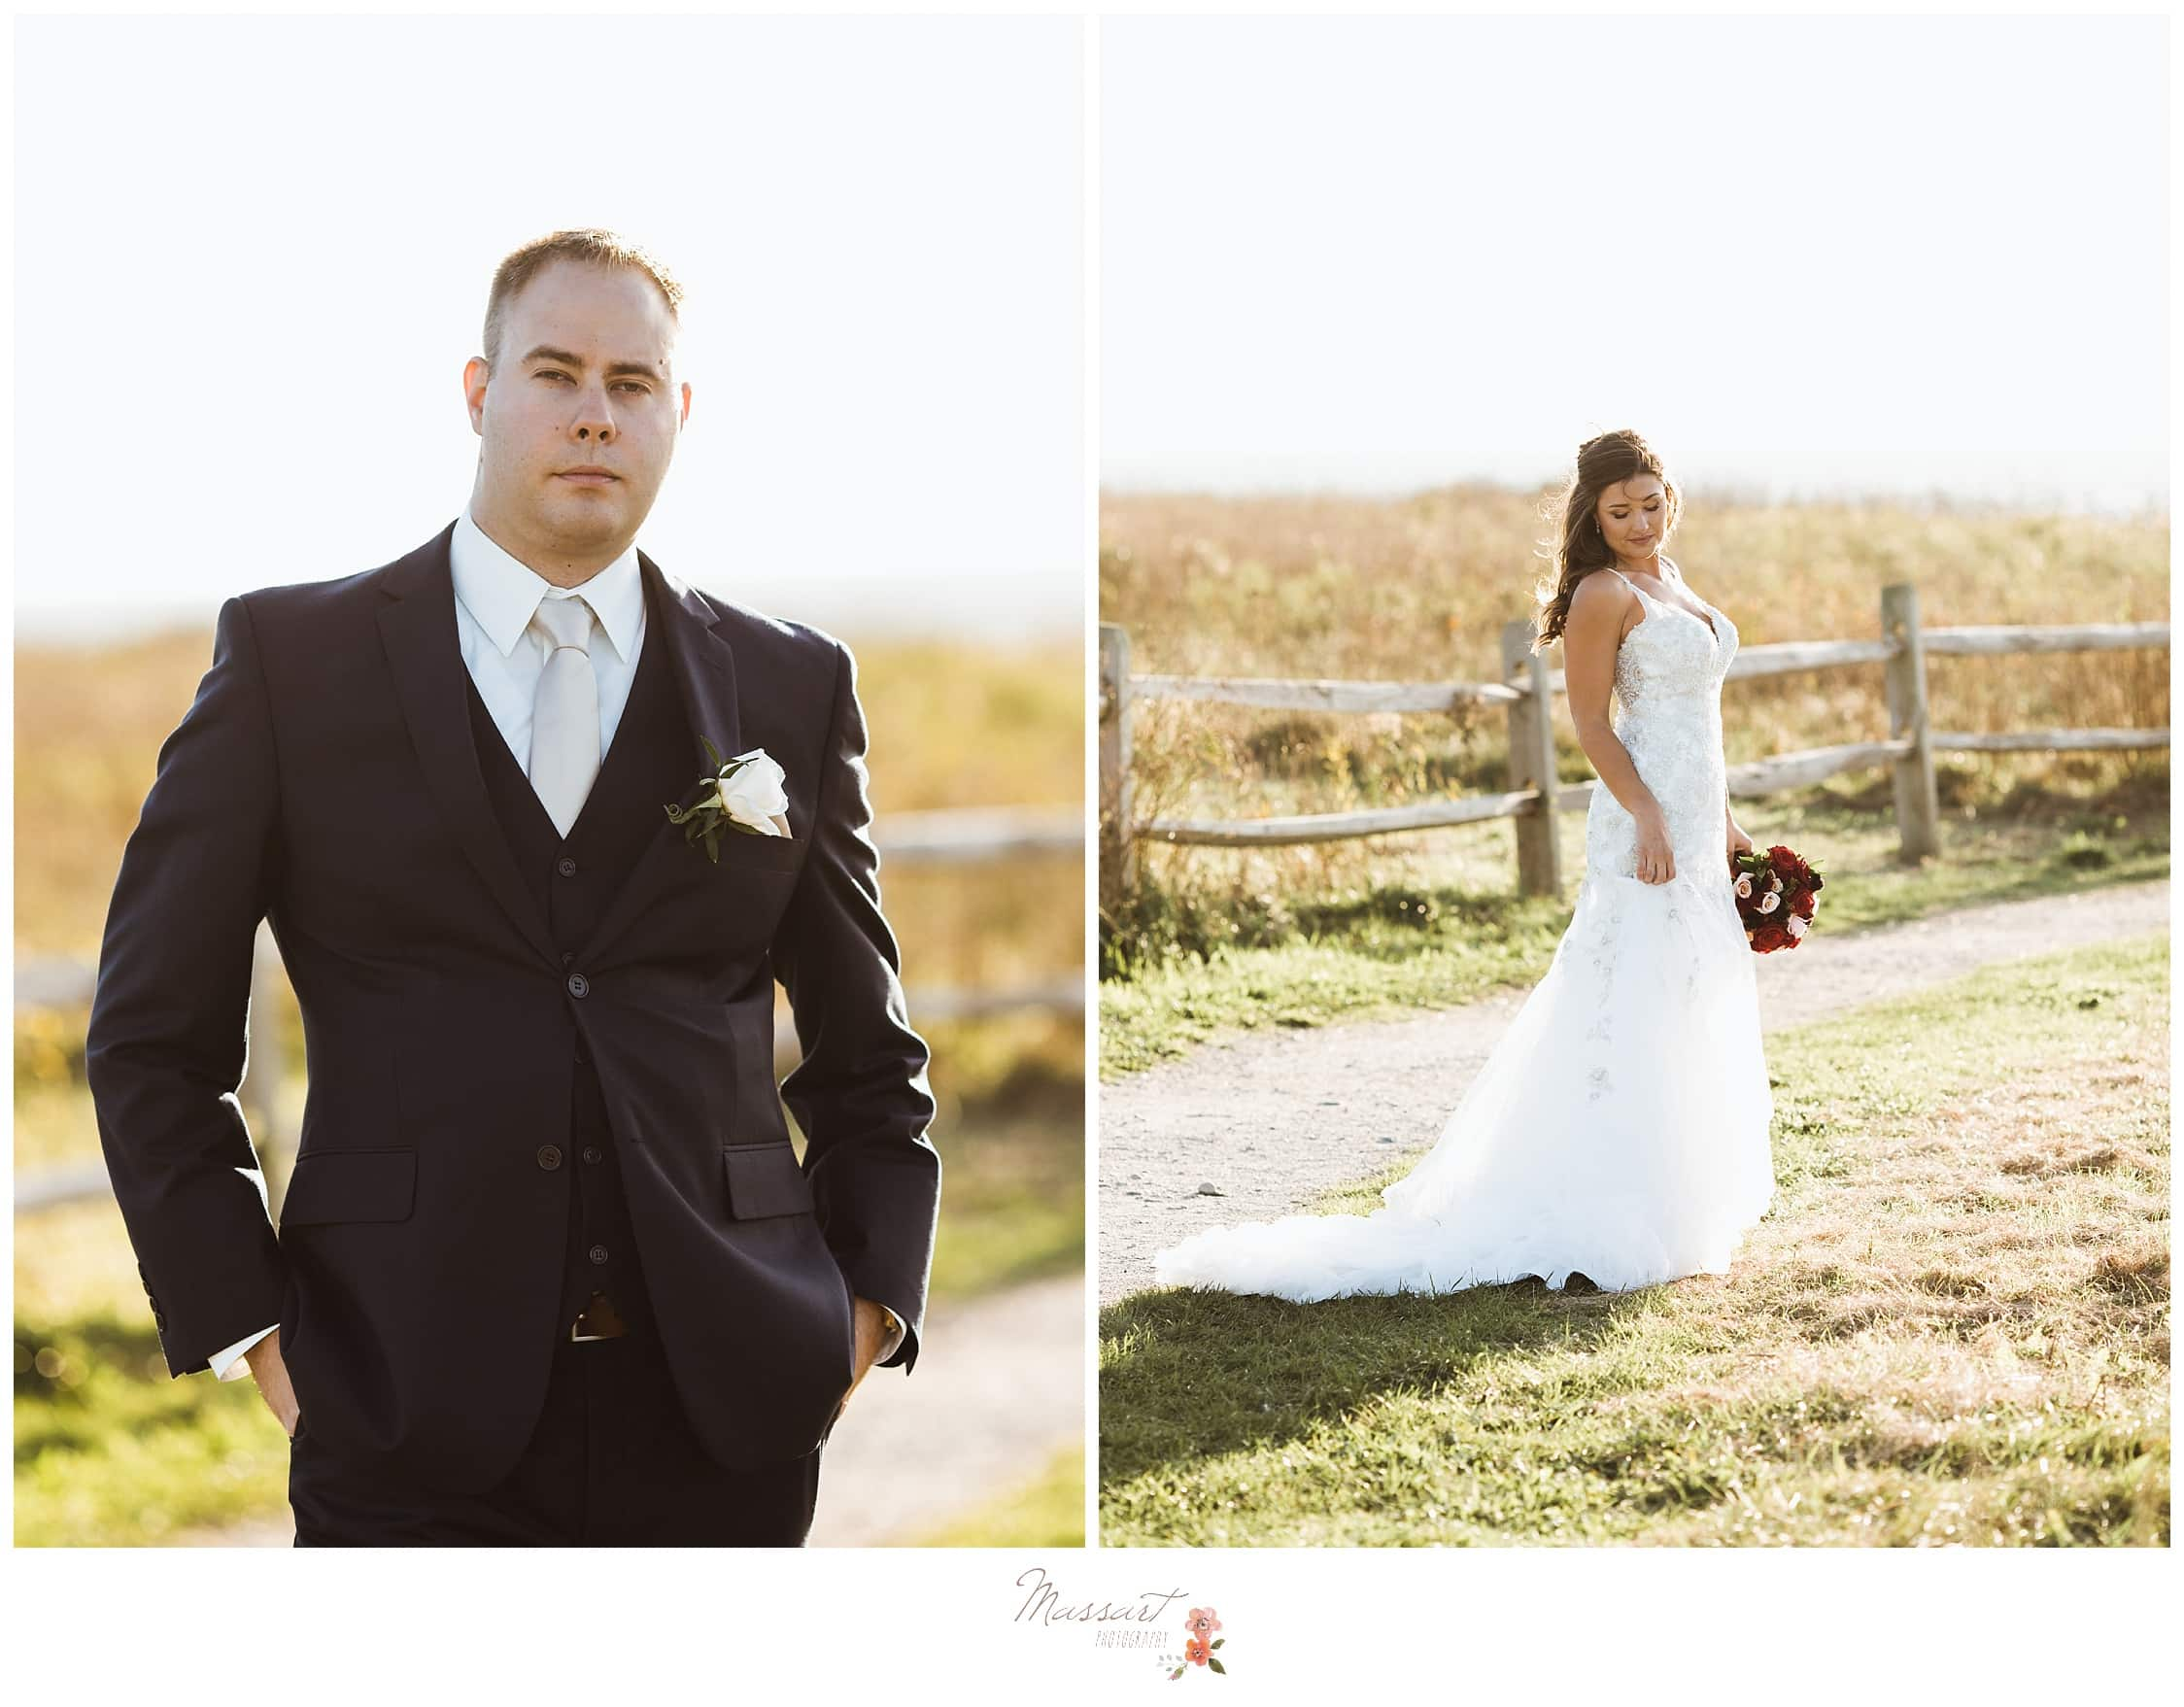 Formal portraits of the bride and groom before their wedding ceremony in Newport, Rhode Island captured by Massart Photography RI